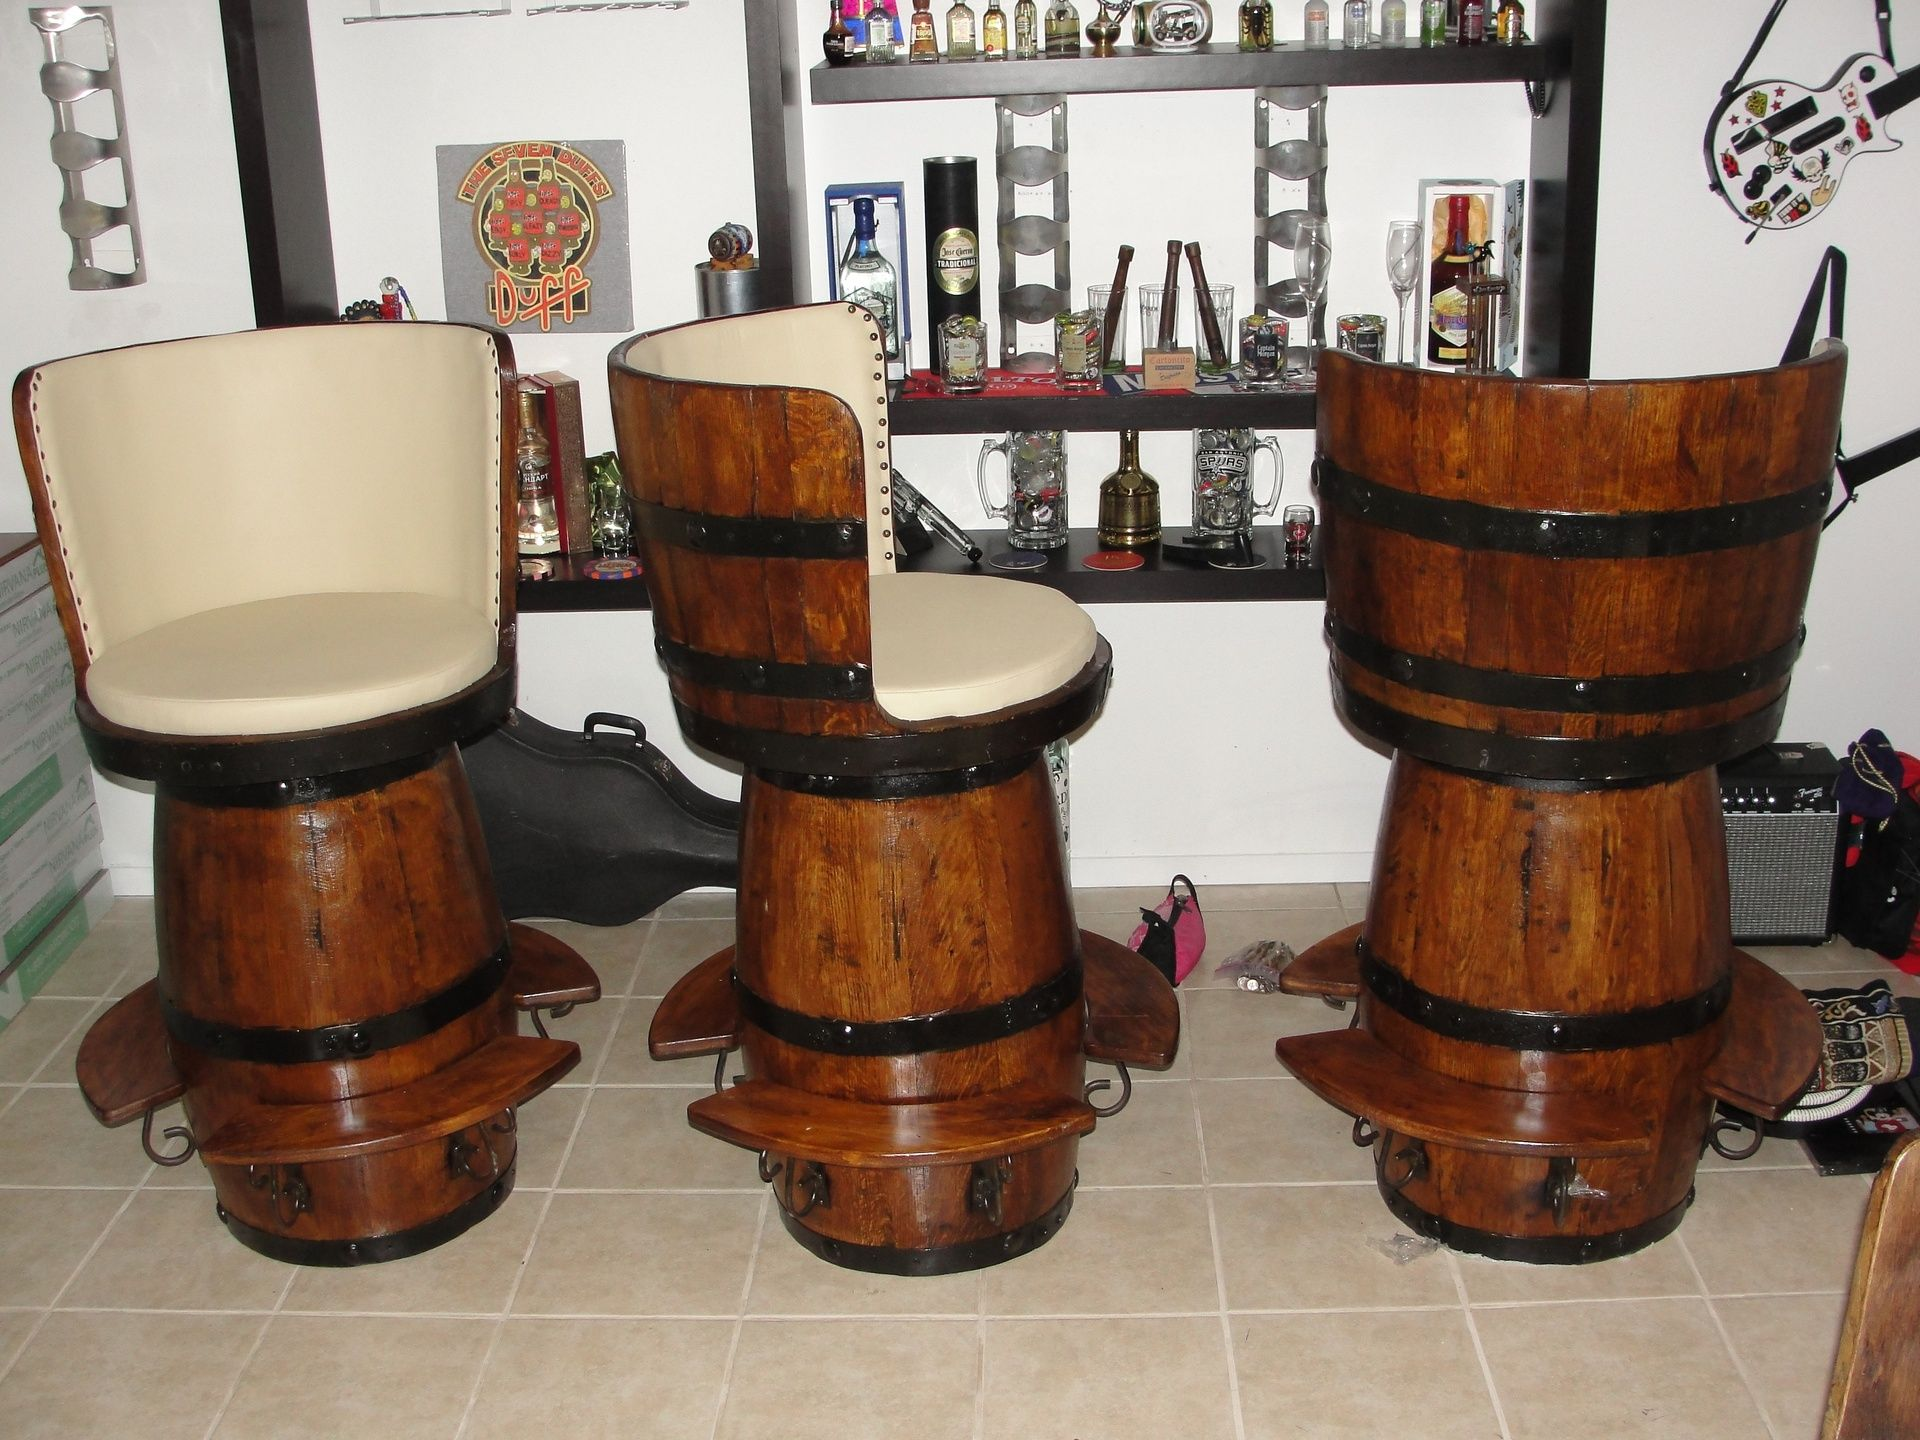 Huge Bar Stools Made Out Of Tequila Barrels. Great For Your Man Cave!